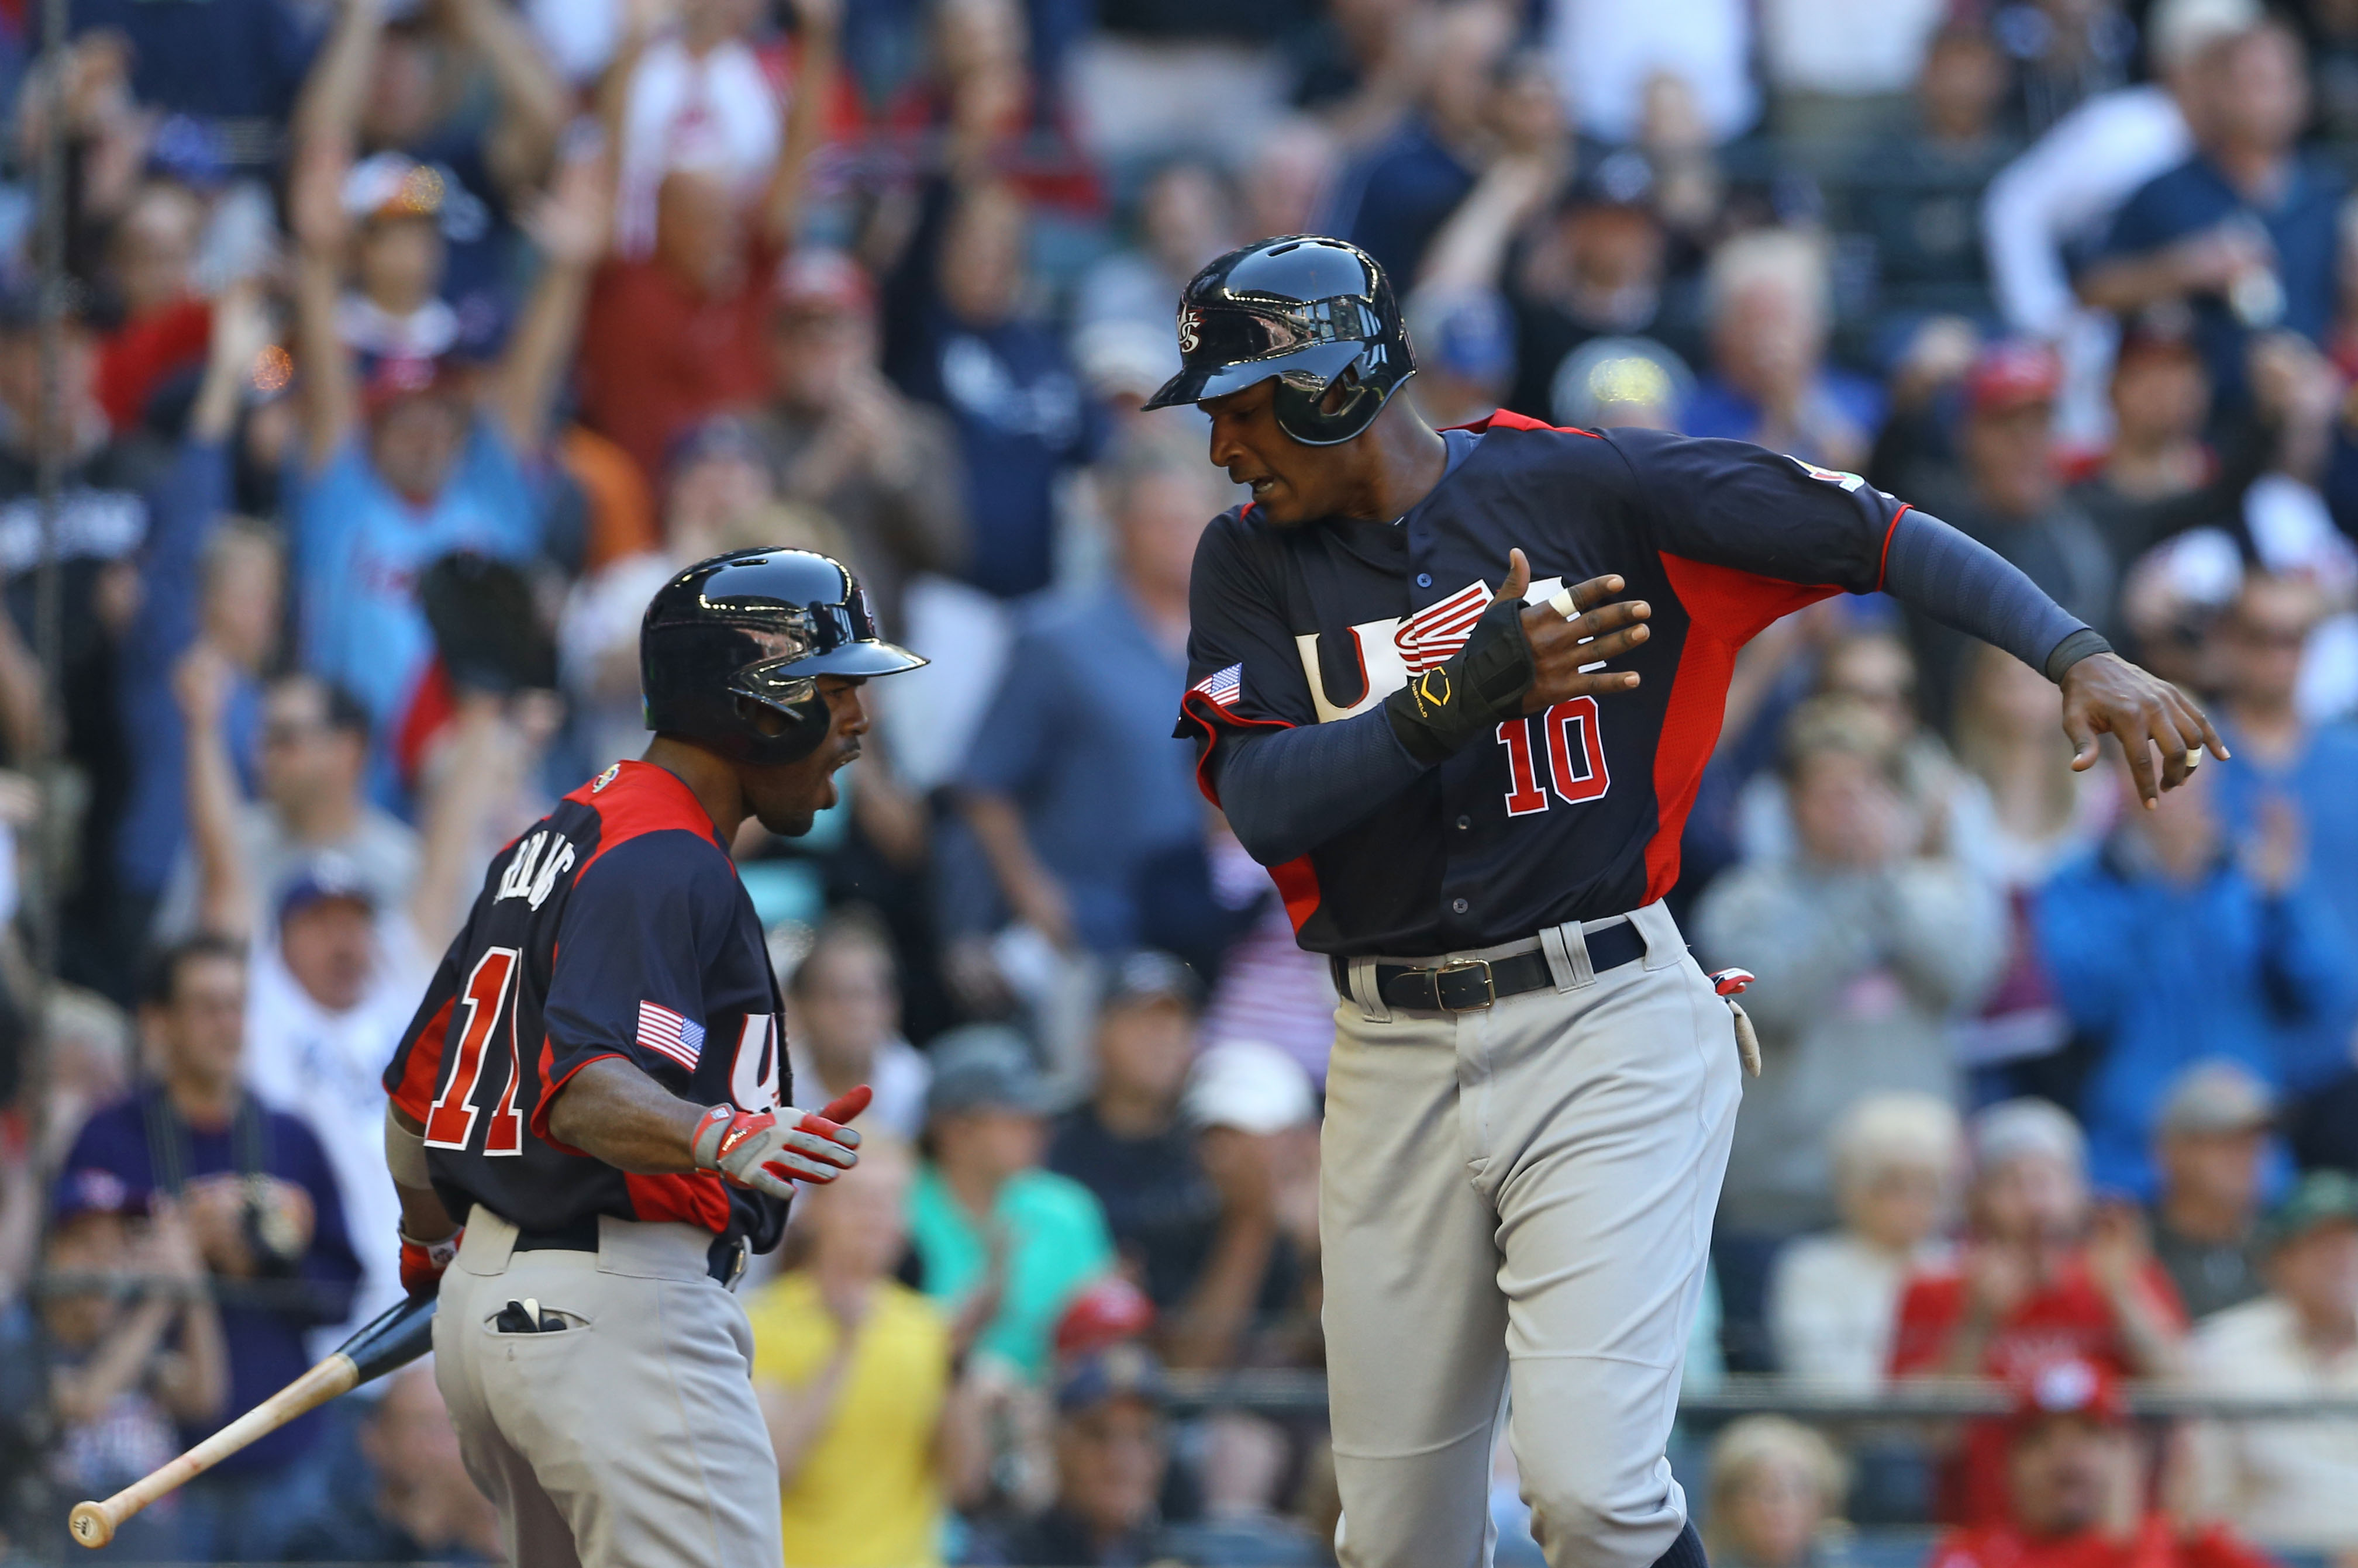 Before scoring in the eighth inning, Adam Jones (R) had the biggest hit for Team USA. (USA Today Sports)